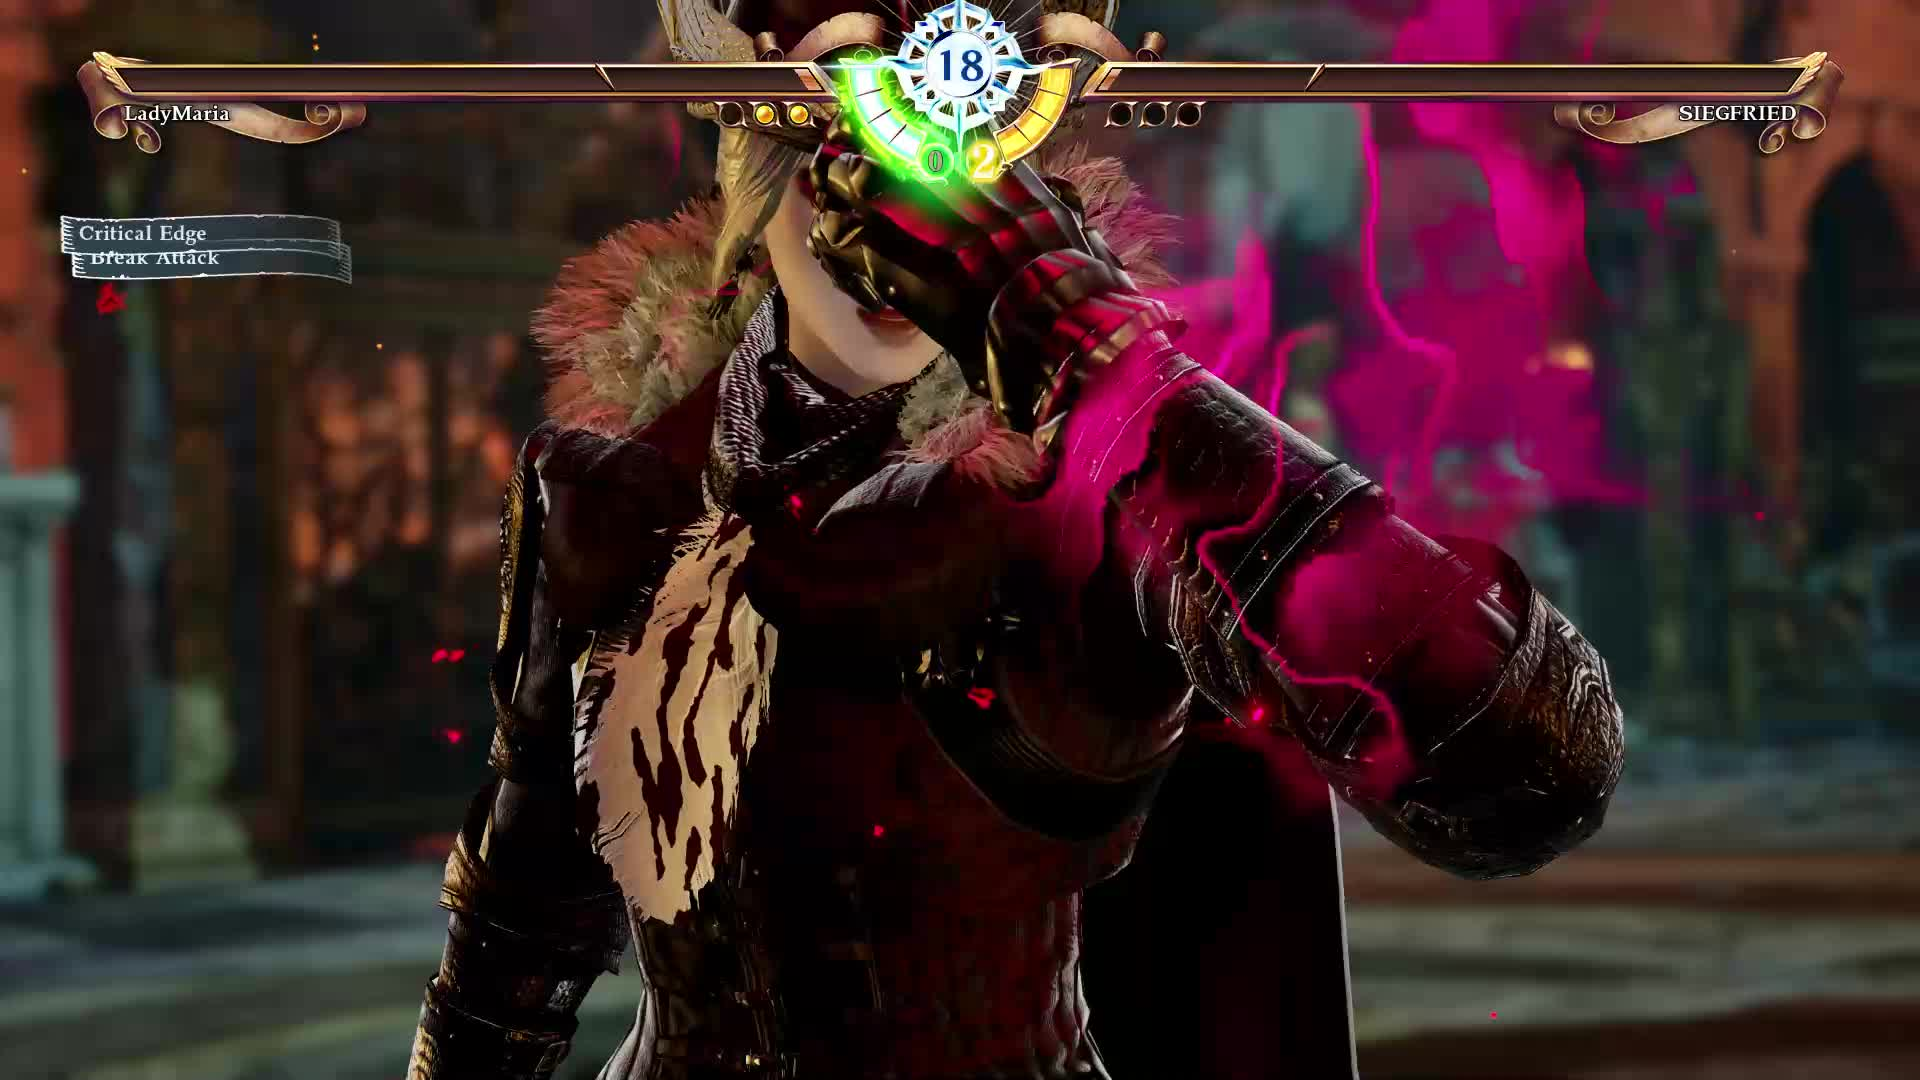 Bloodborne, Maria, SoulCaliburVI, A corpse should be left well enough alone GIFs